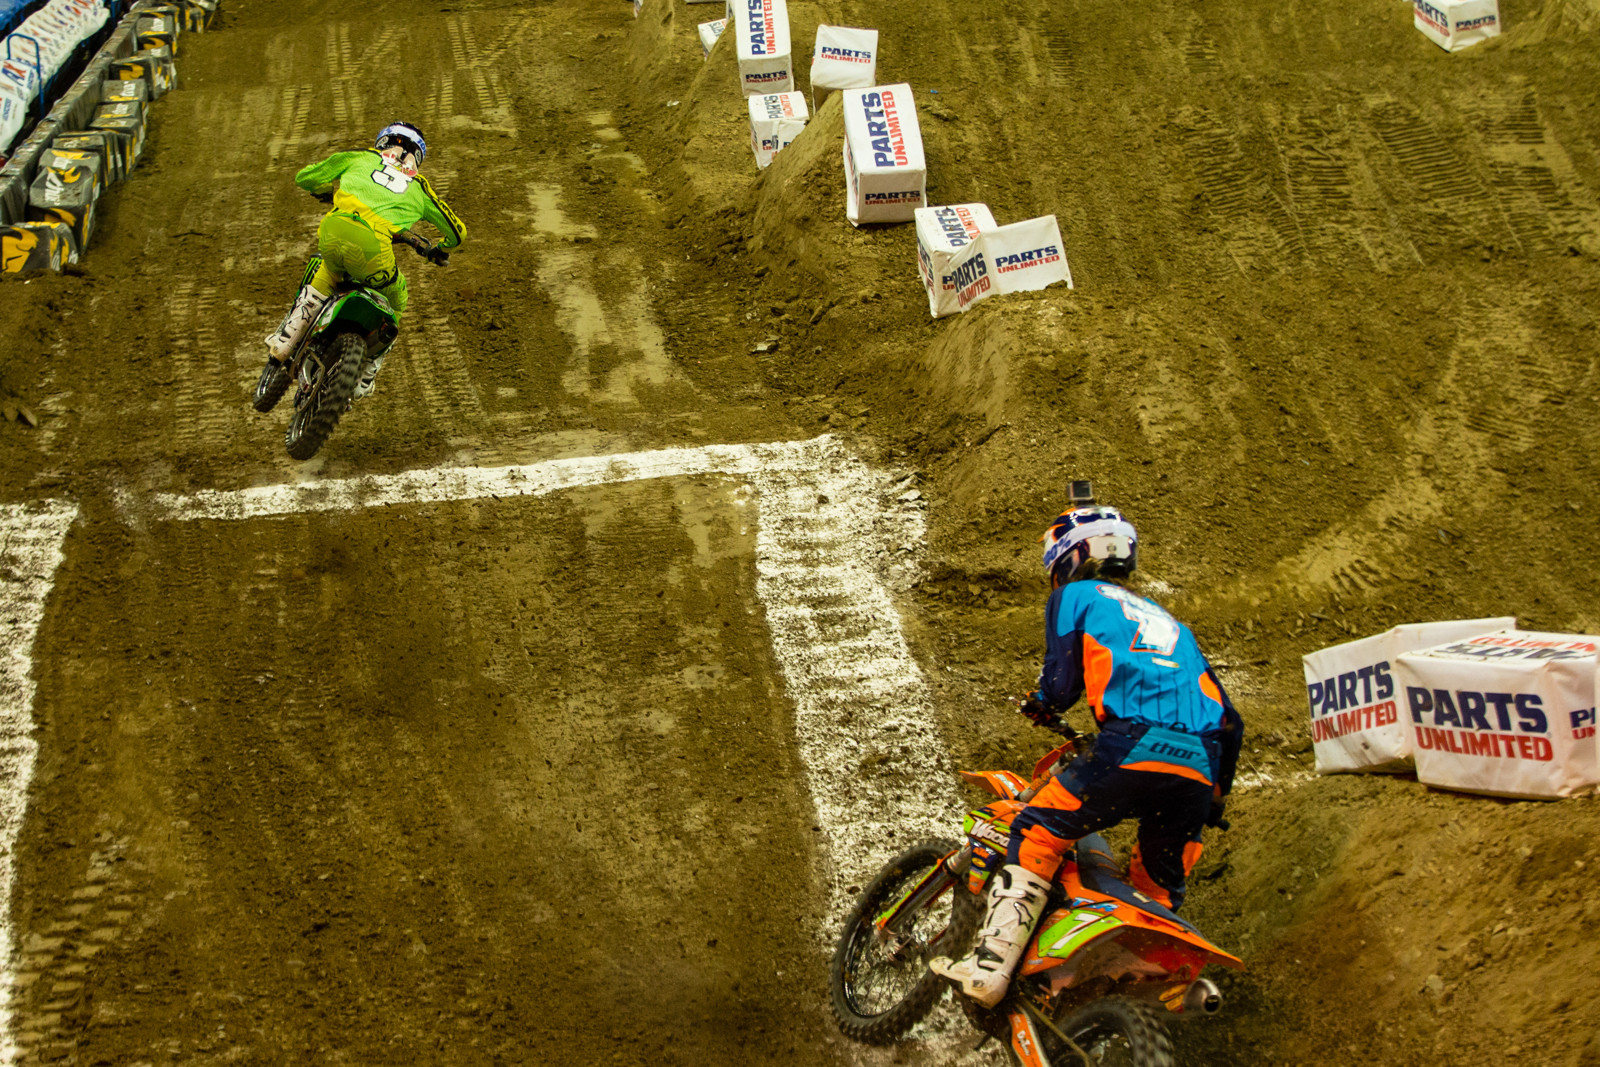 Arenacross Main Event One Start - Photo Gallery: Ontario Arenacross - Saturday Night - Motocross Pictures - Vital MX